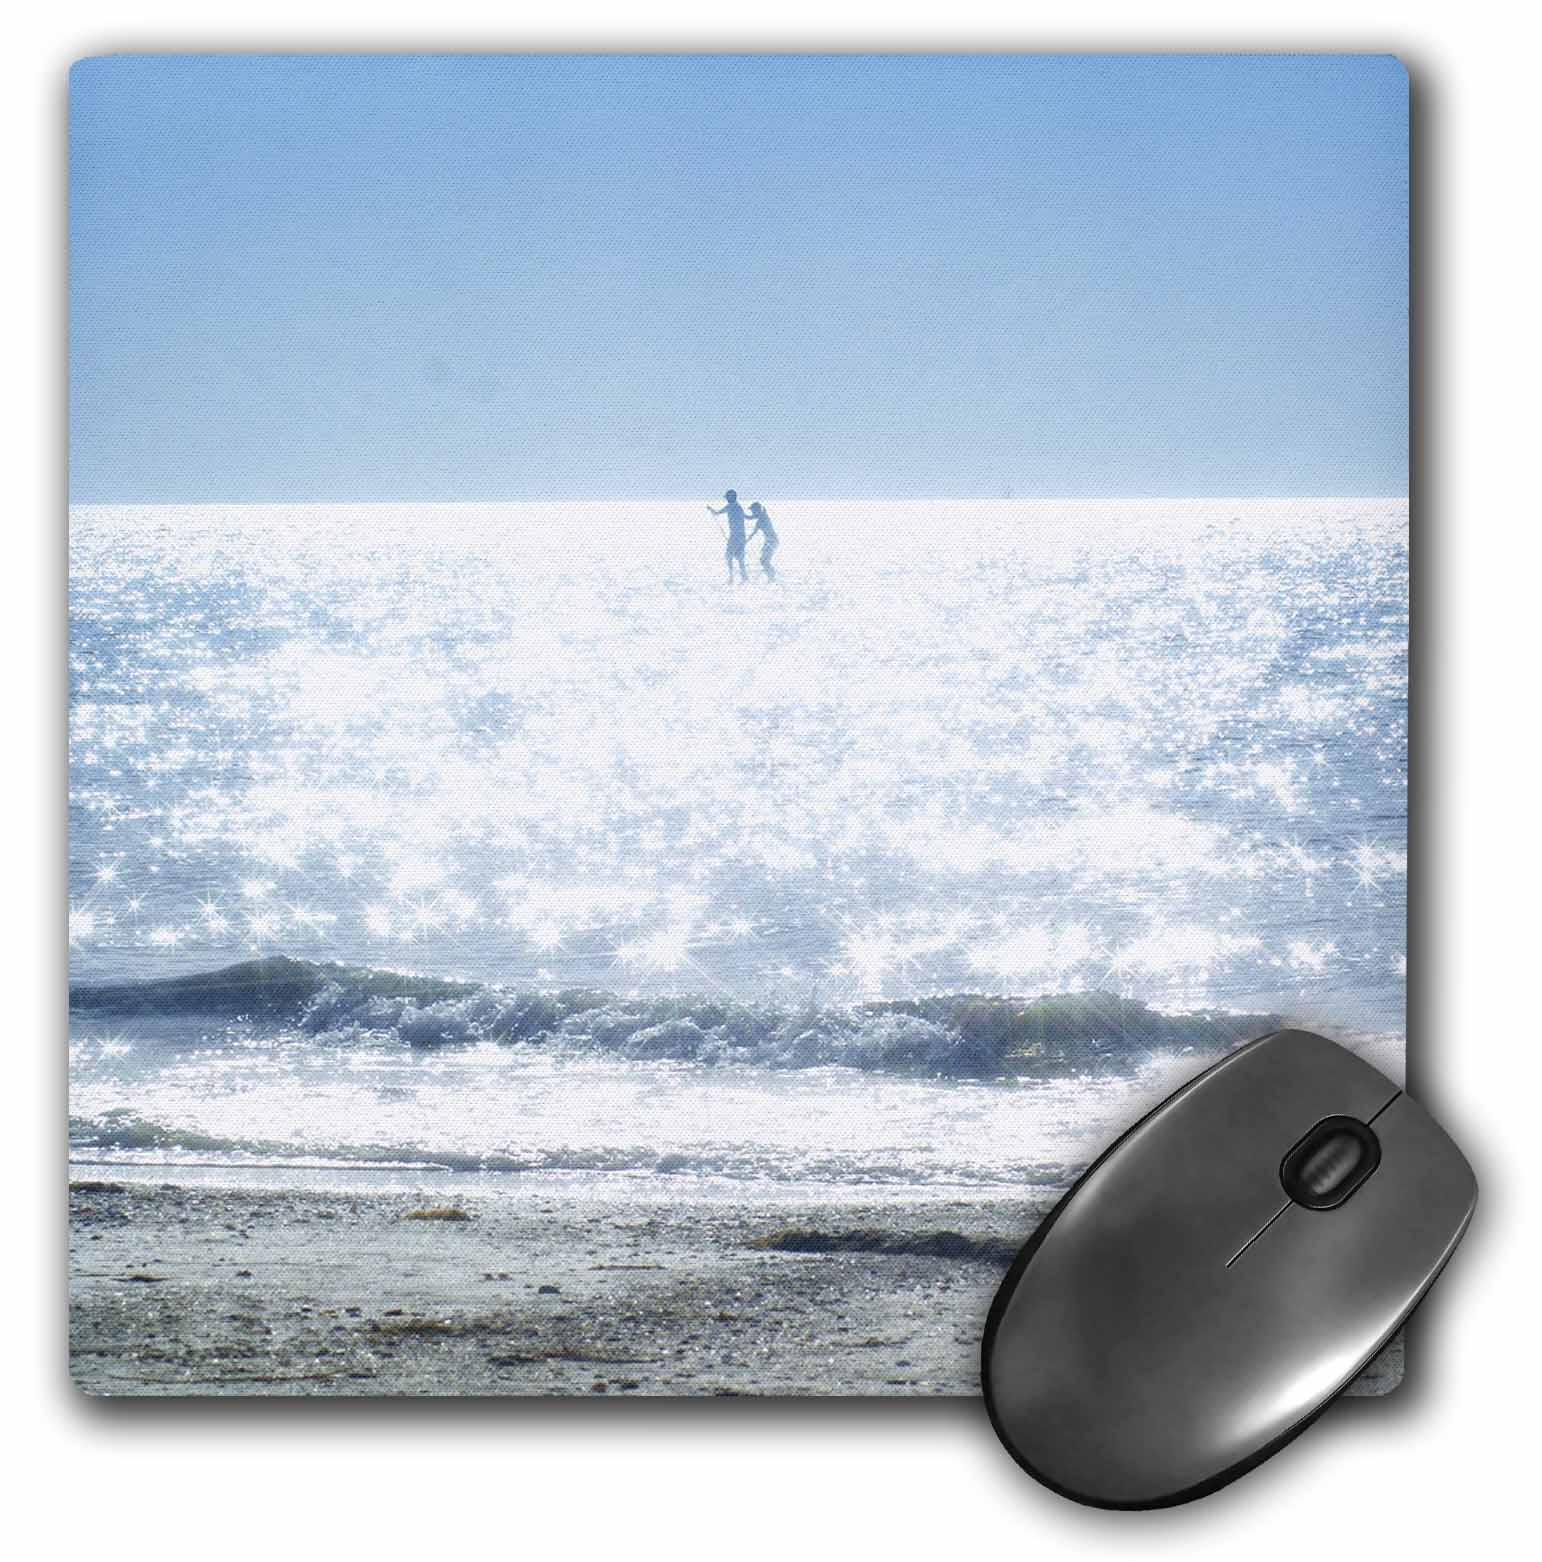 3dRose Kids On White Sparkly Waves and Blue Skies, Mouse Pad, 8 by 8 inches